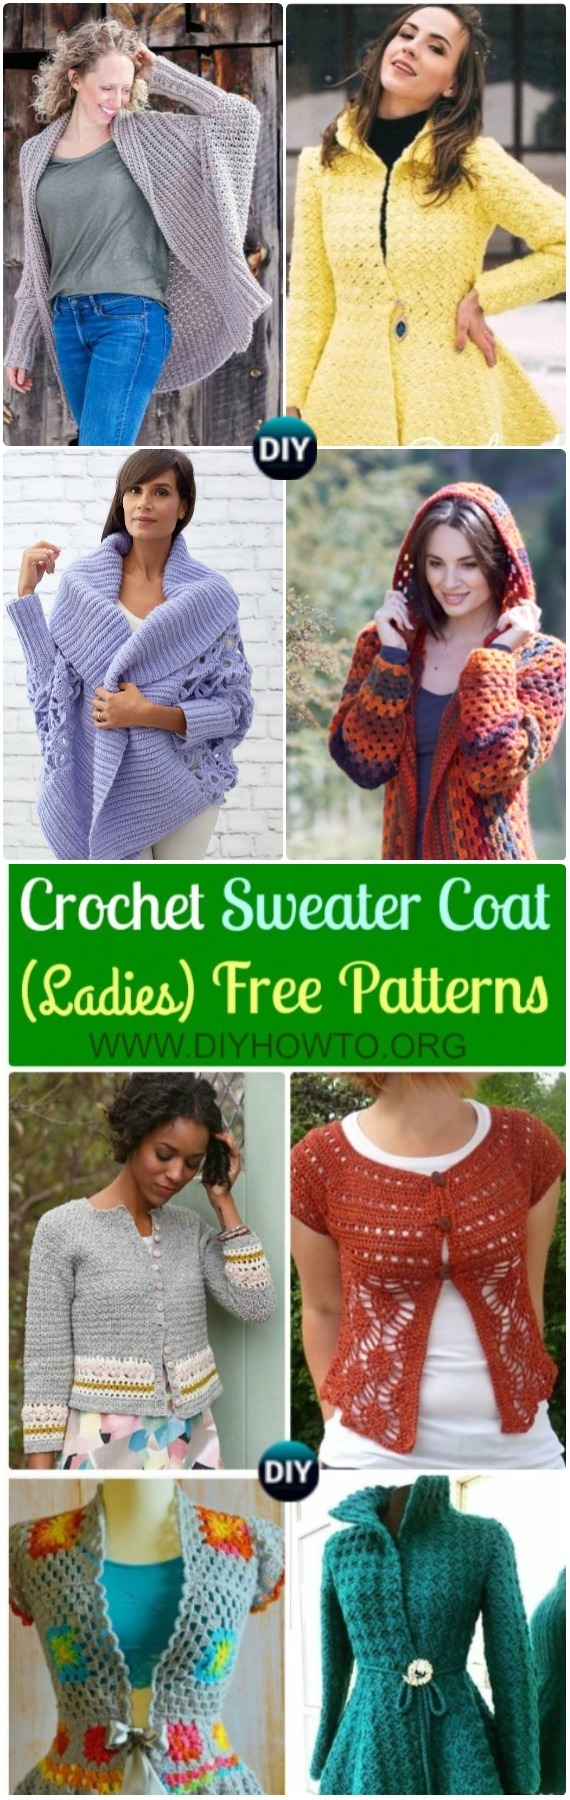 Crochet Women Sweater Coat Cardigan Free Patterns: Crochet Open Front Sweater Coat, Button Up Sweater Coat, Zip Up Sweater Cardigan